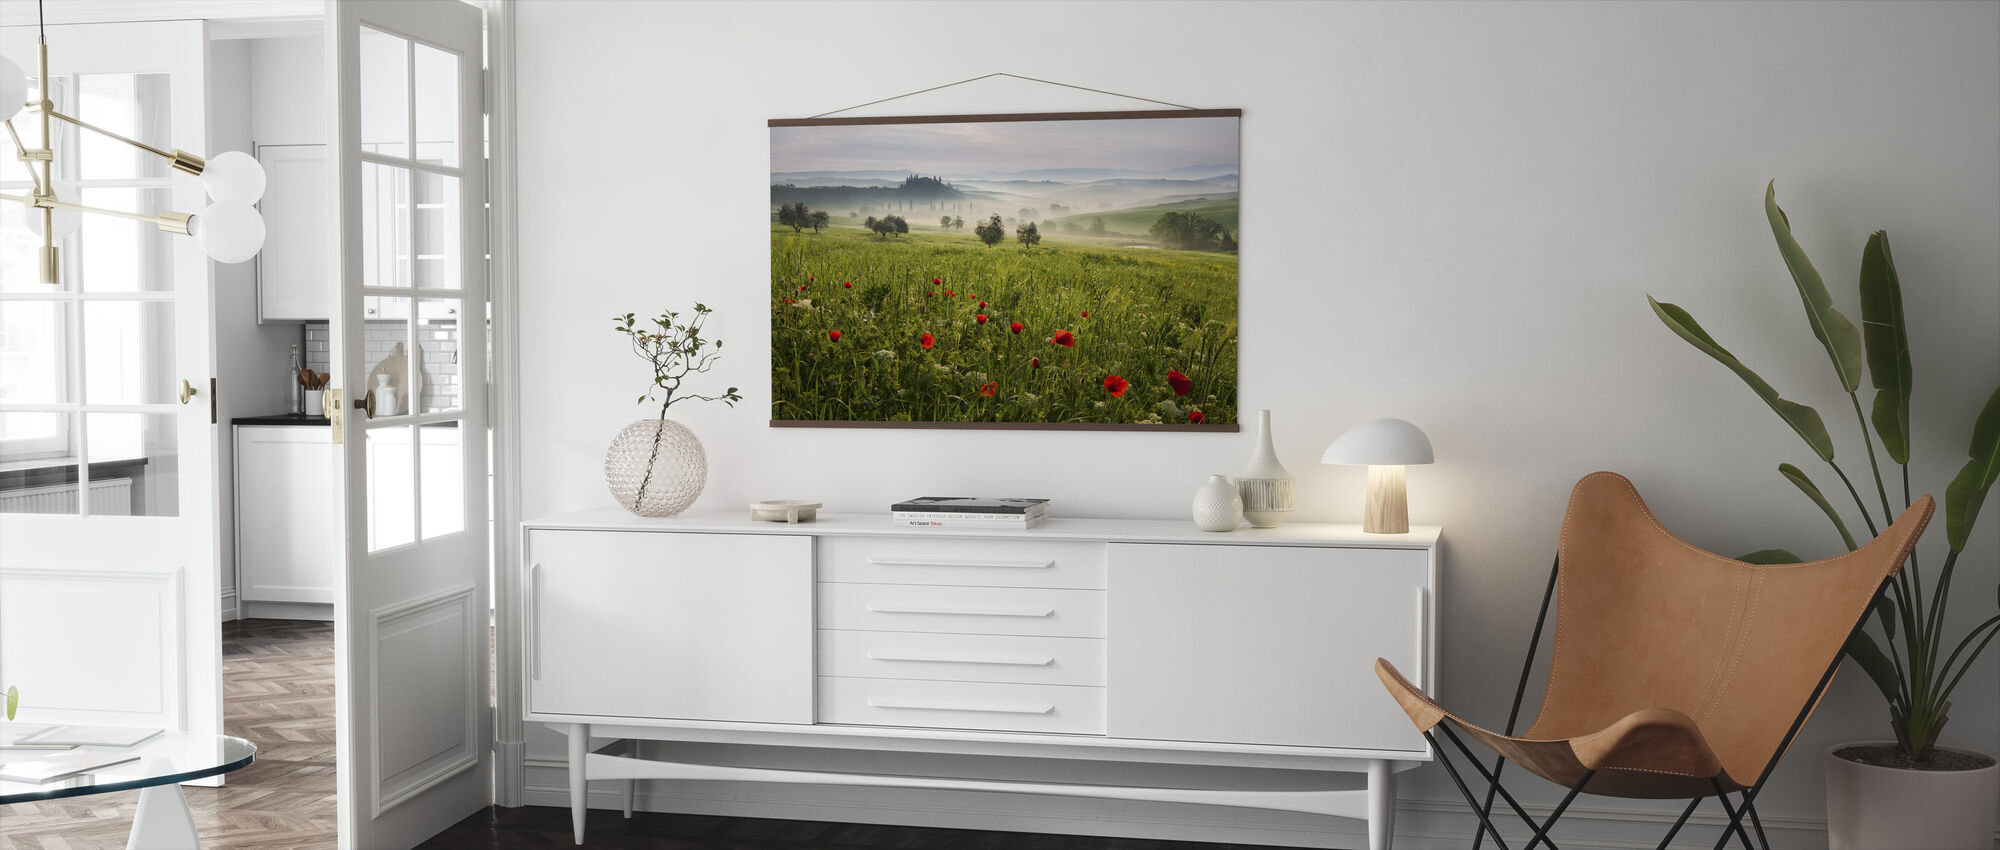 Toscaanse lente - Poster - Woonkamer